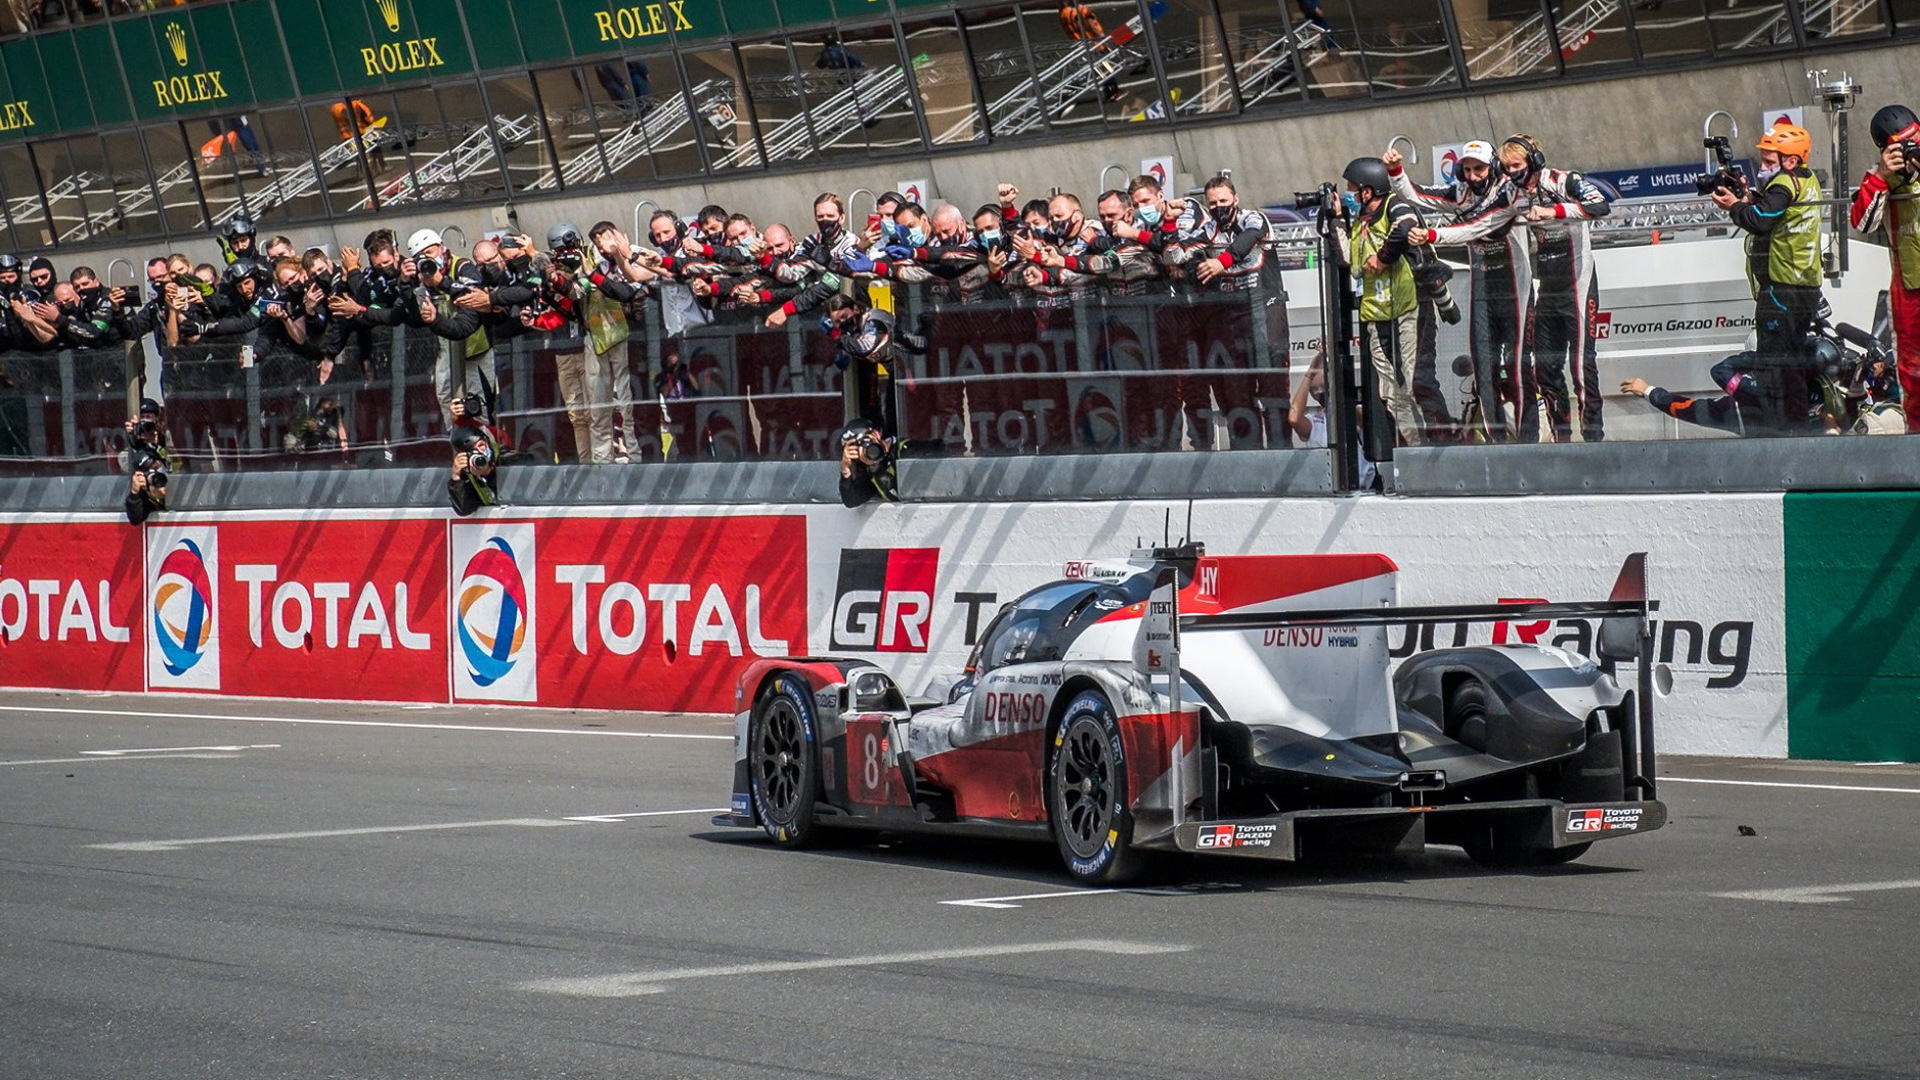 No. 8 Toyota TS050 Hybrid LMP1 at the 2020 24 Hours of Le Mans